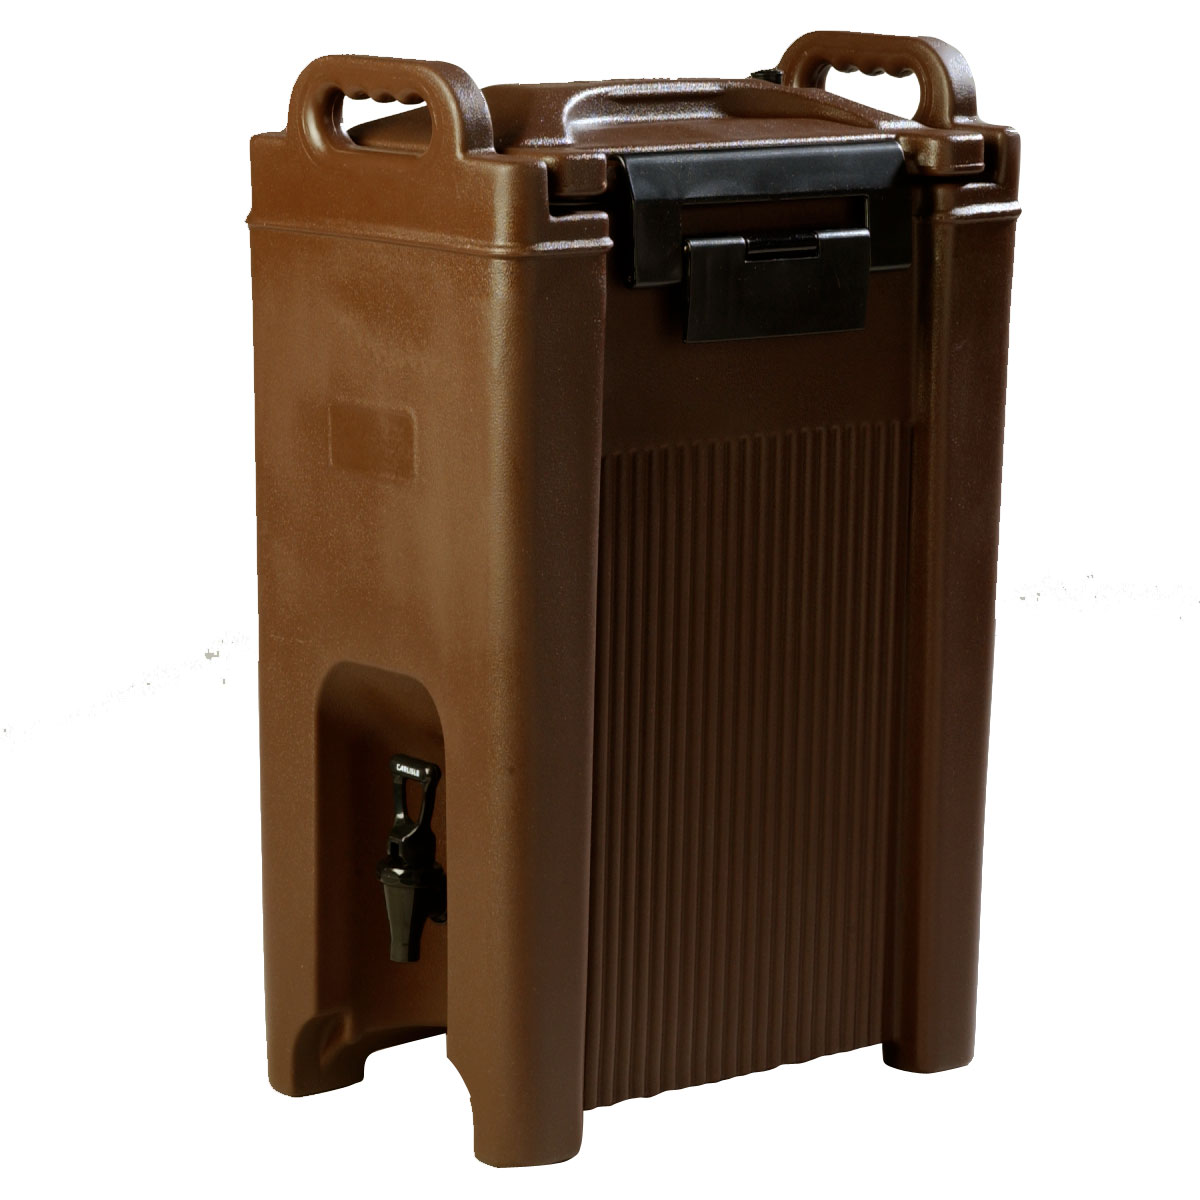 BEVERAGE SERVER INSULATED - 9.4Lt (BROWN) 5.9kg - 266 x 431 x 469mm